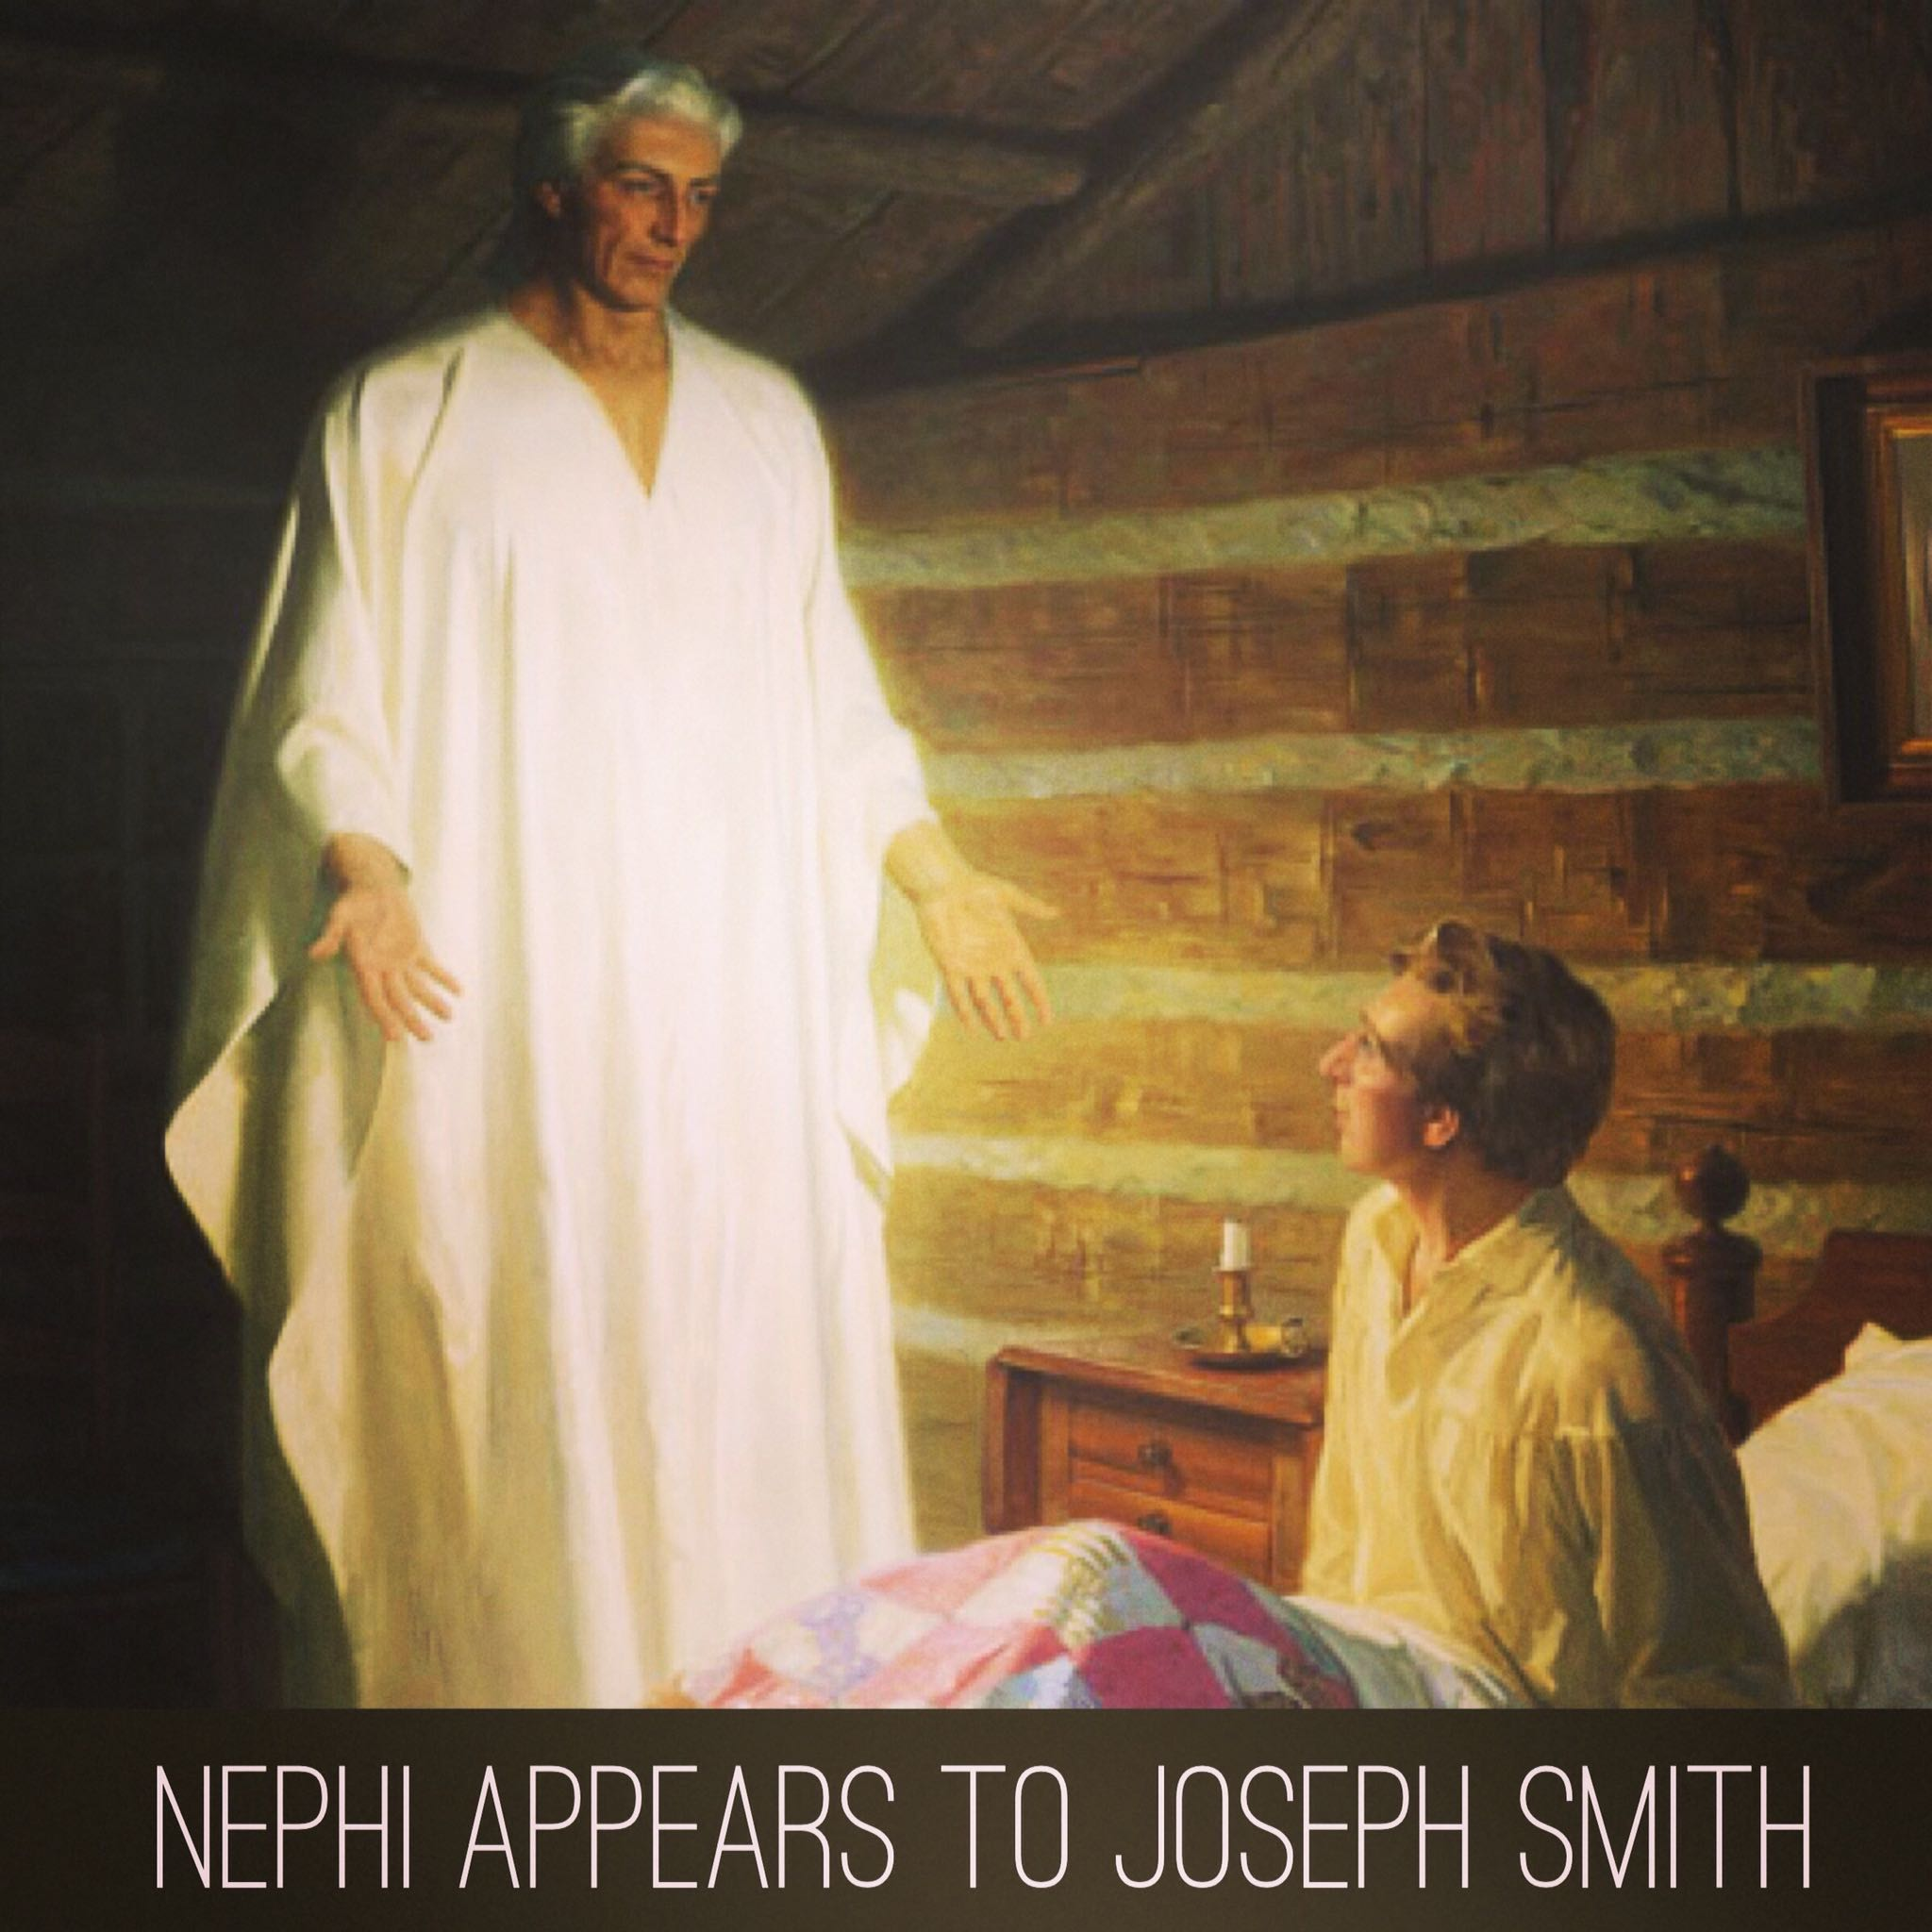 Nephi appears to Joseph